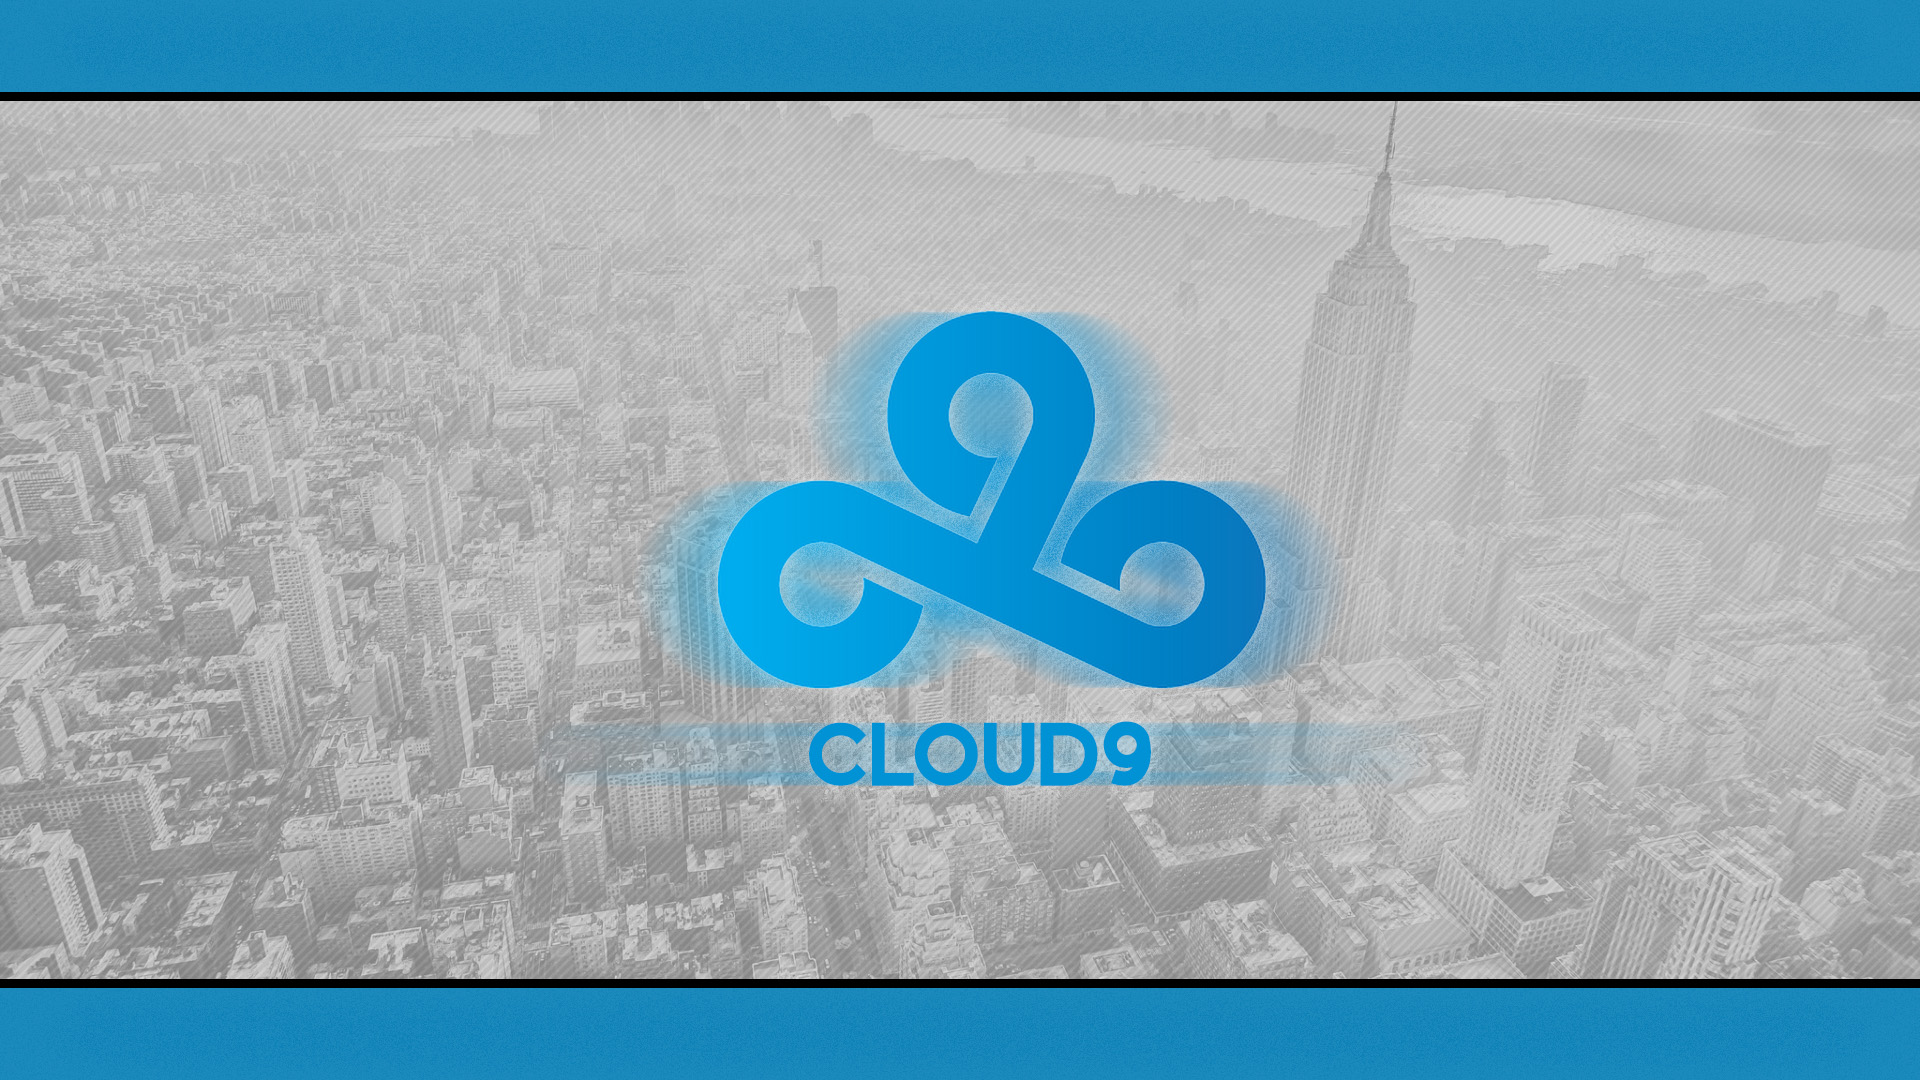 25 Cloud9 Wallpapers BC GB